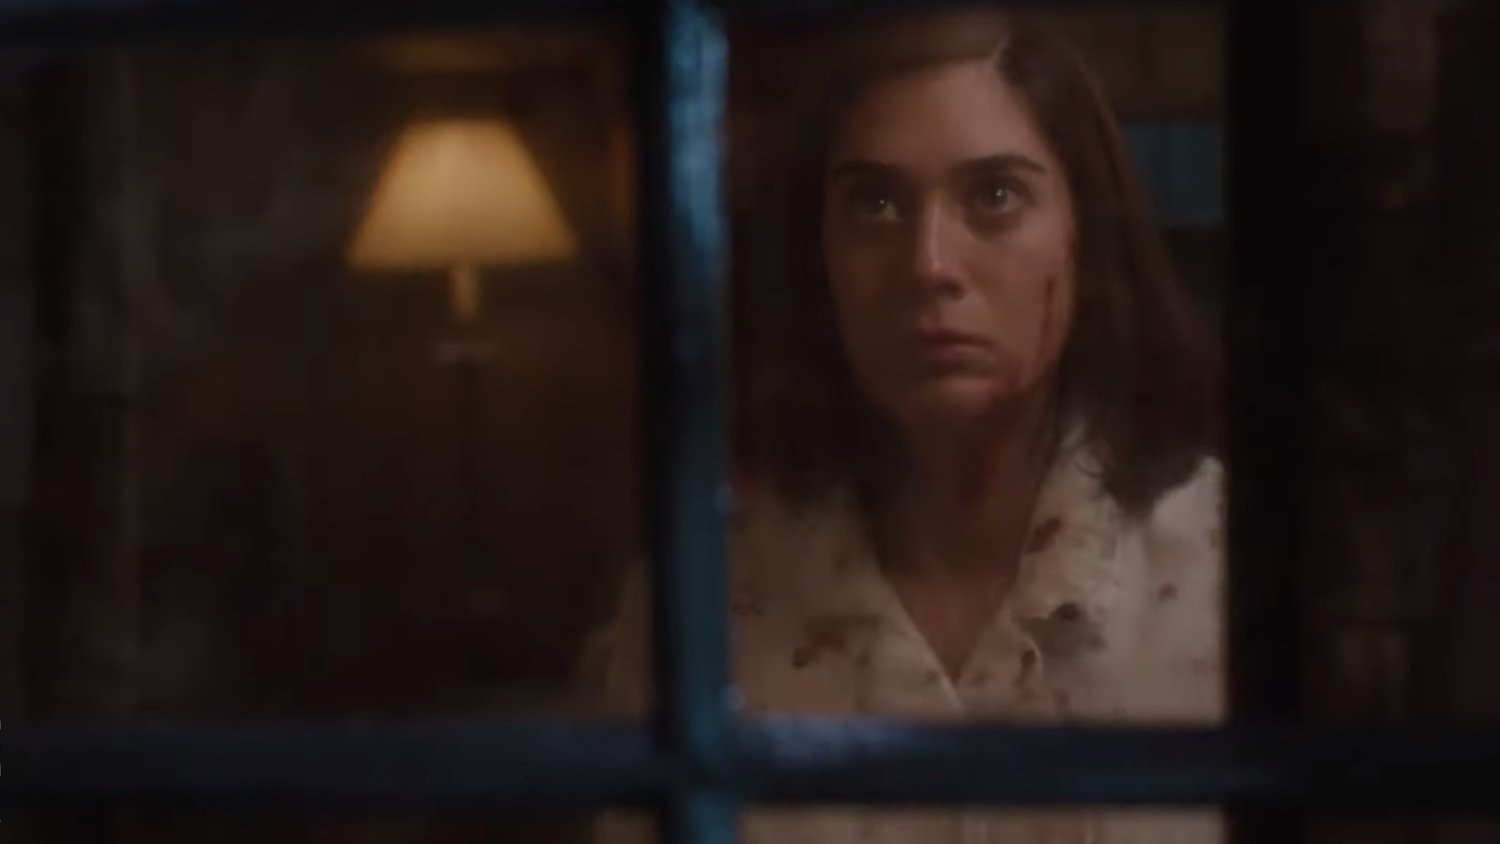 Haunting and Unsettling Trailer For Stephen King's CASTLE ROCK Season 2